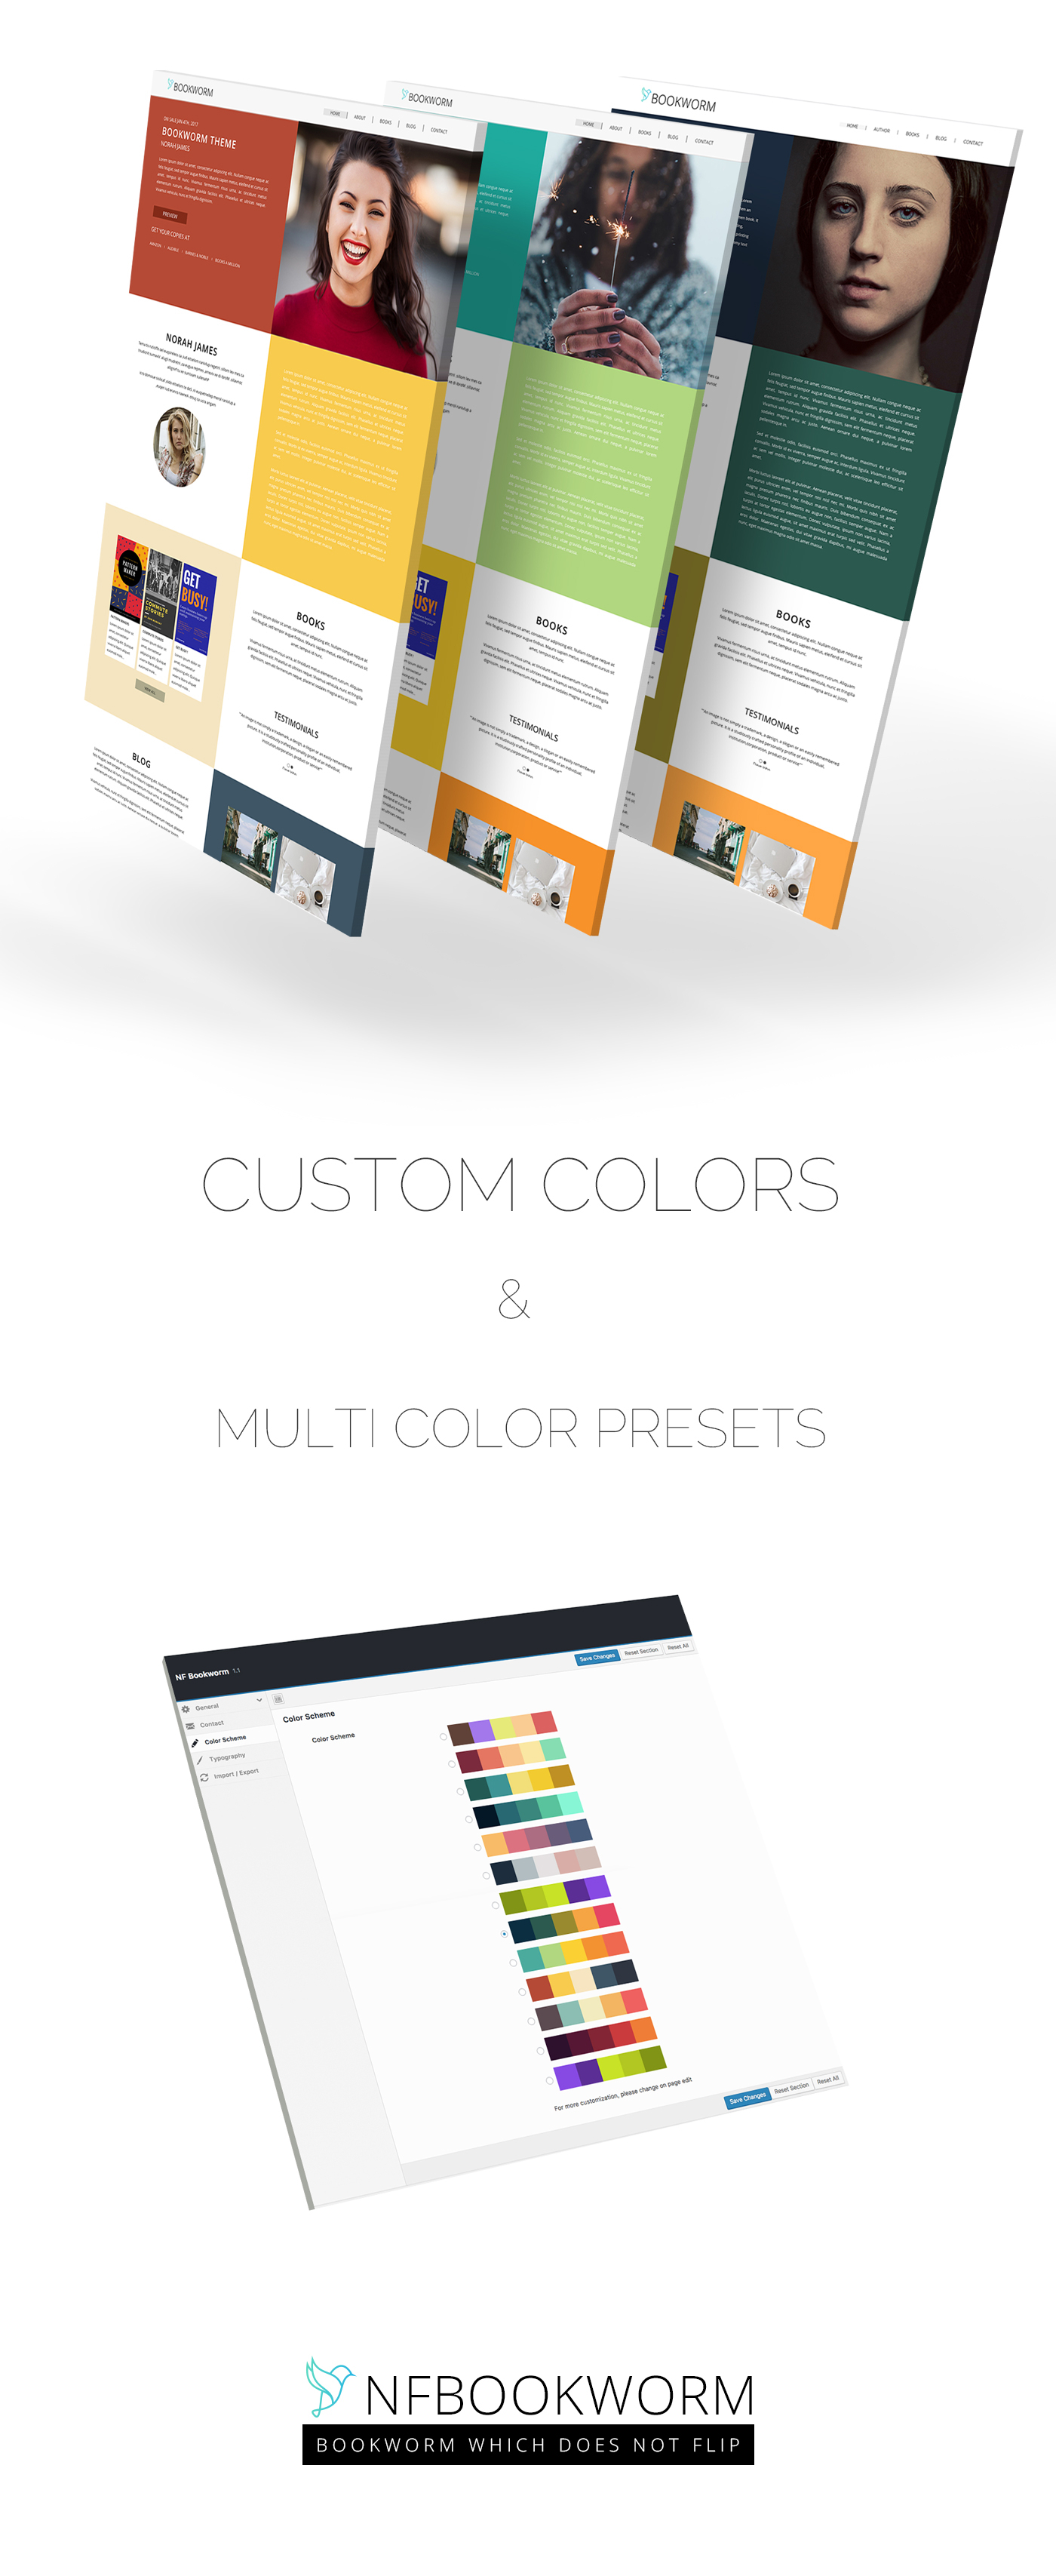 5ac73357966125.59ea4805b3272 Top Result 60 Awesome Wordpress Templates for Authors Picture 2017 Xzw1